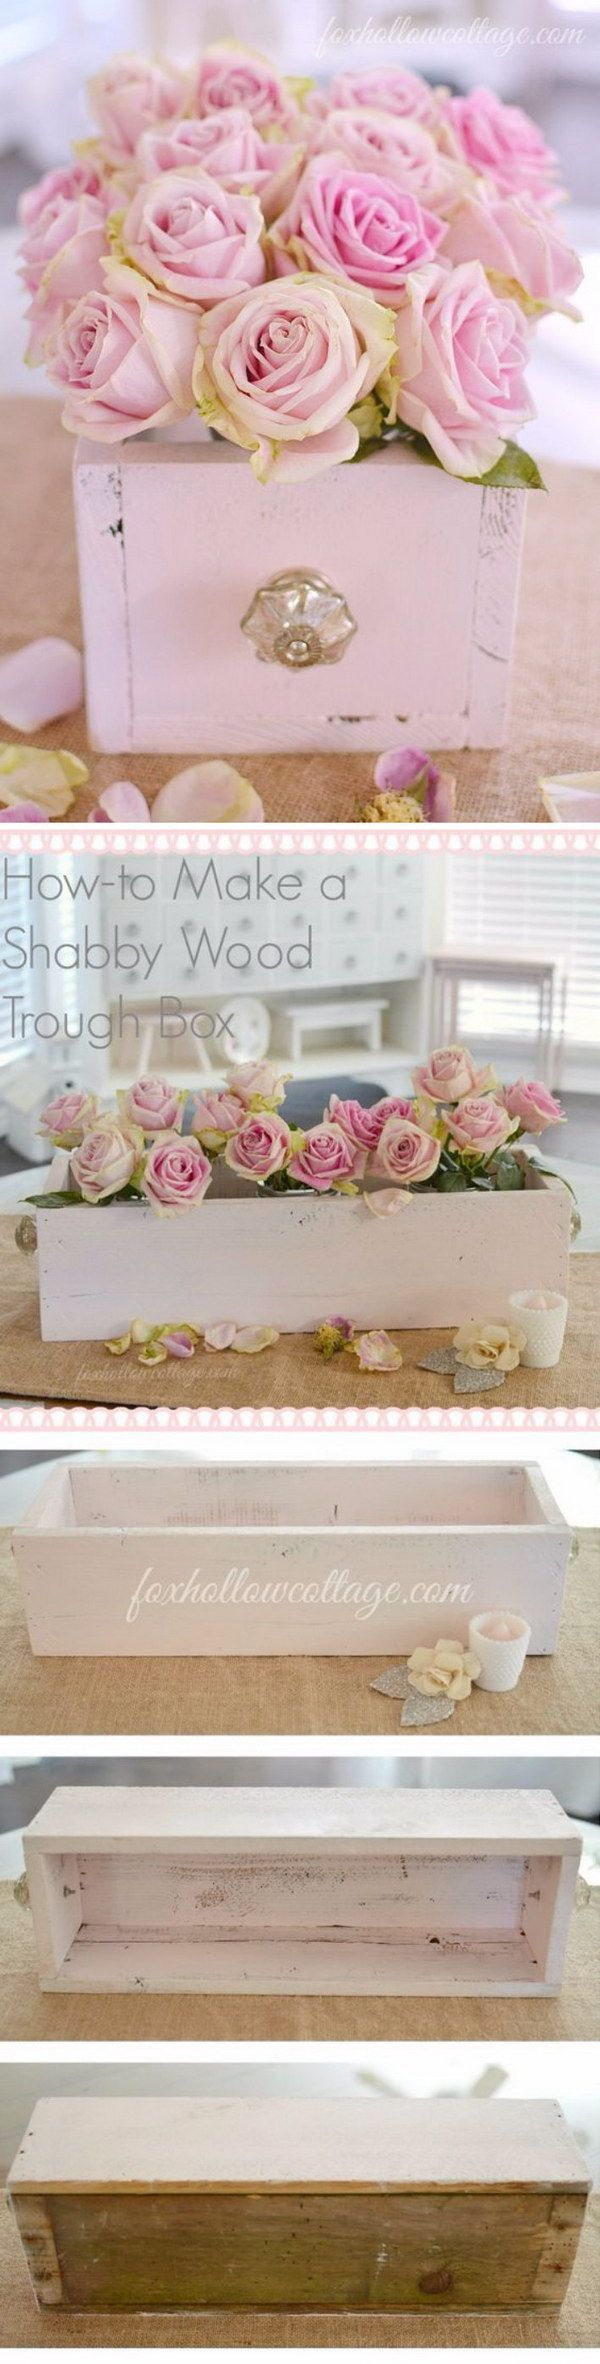 30+ DIY Ideas & Tutorials to Get Shabby Chic Style – Gaby .